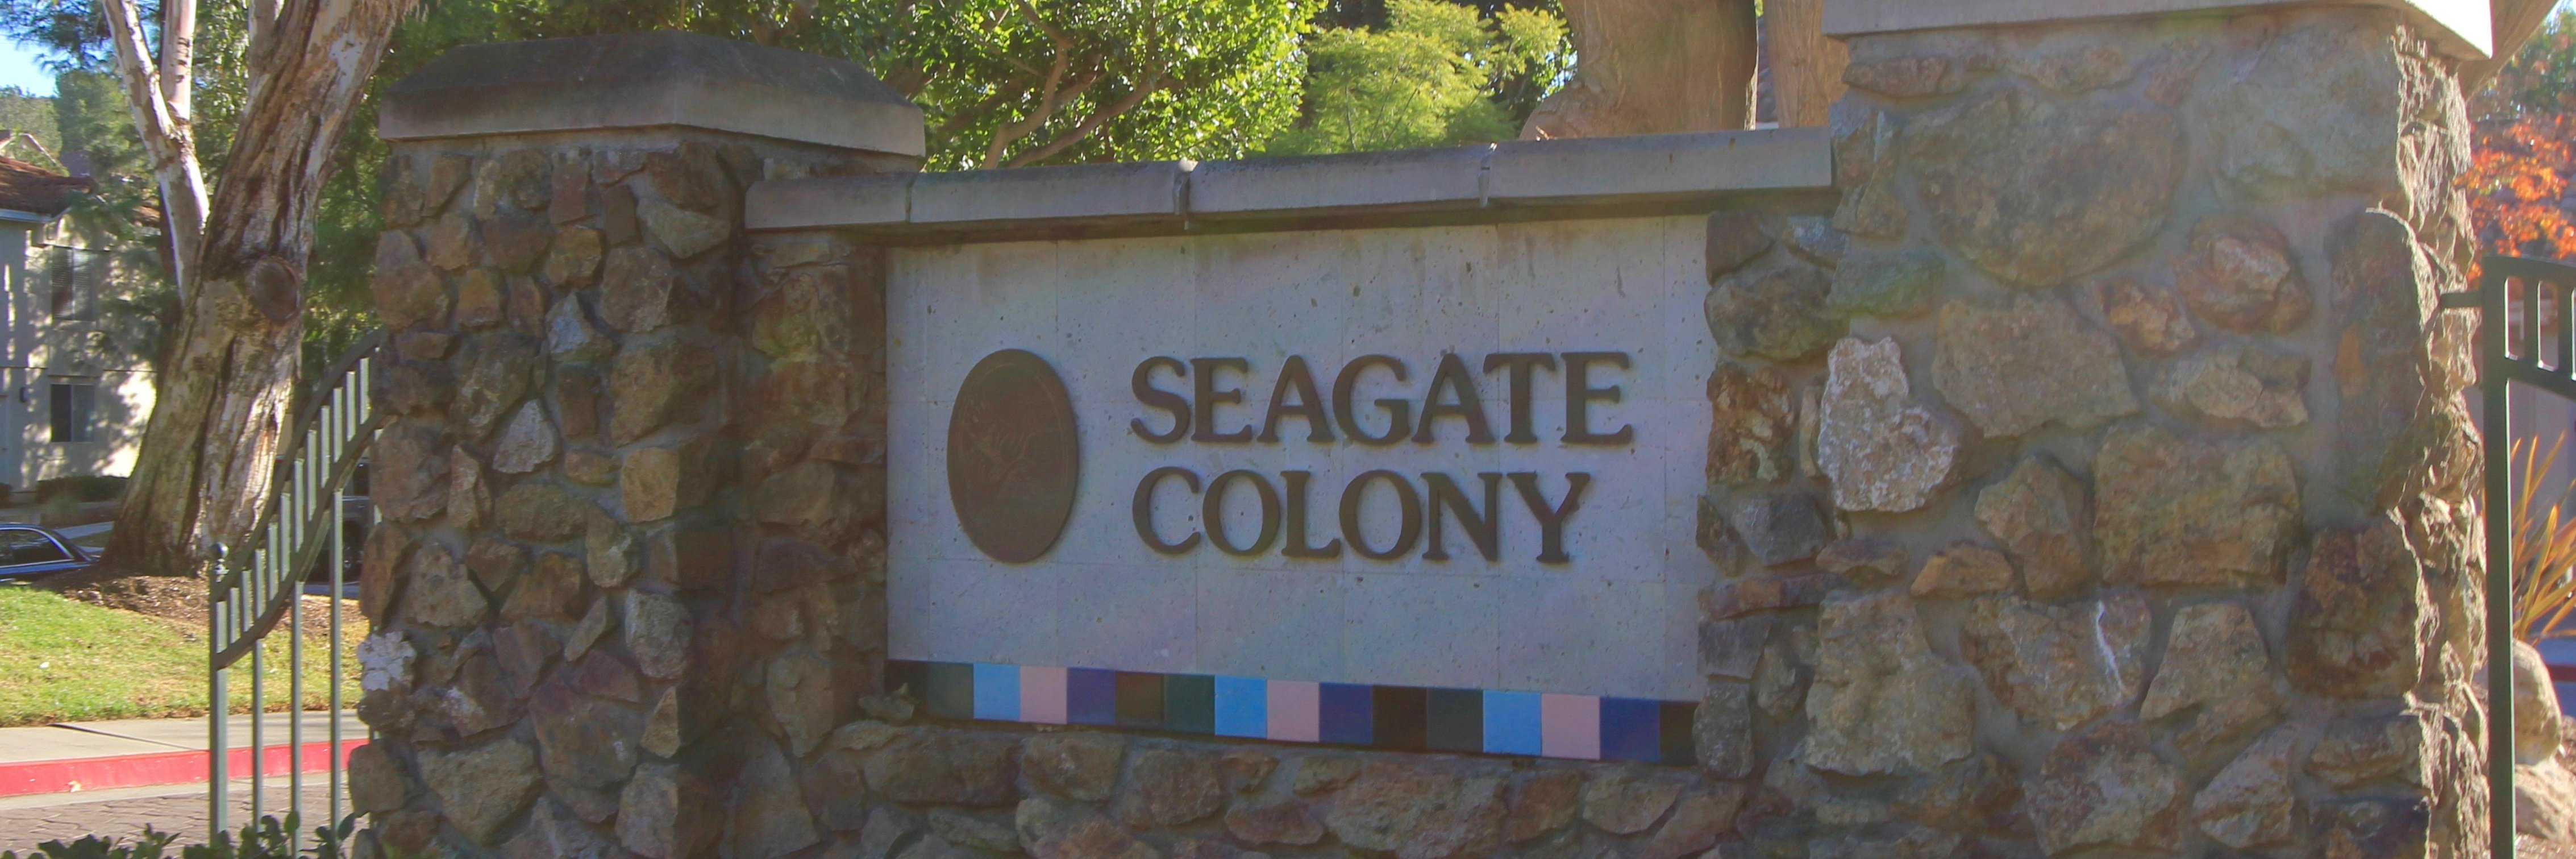 Seagate Colony Community Marquee in Aliso Viejo Ca